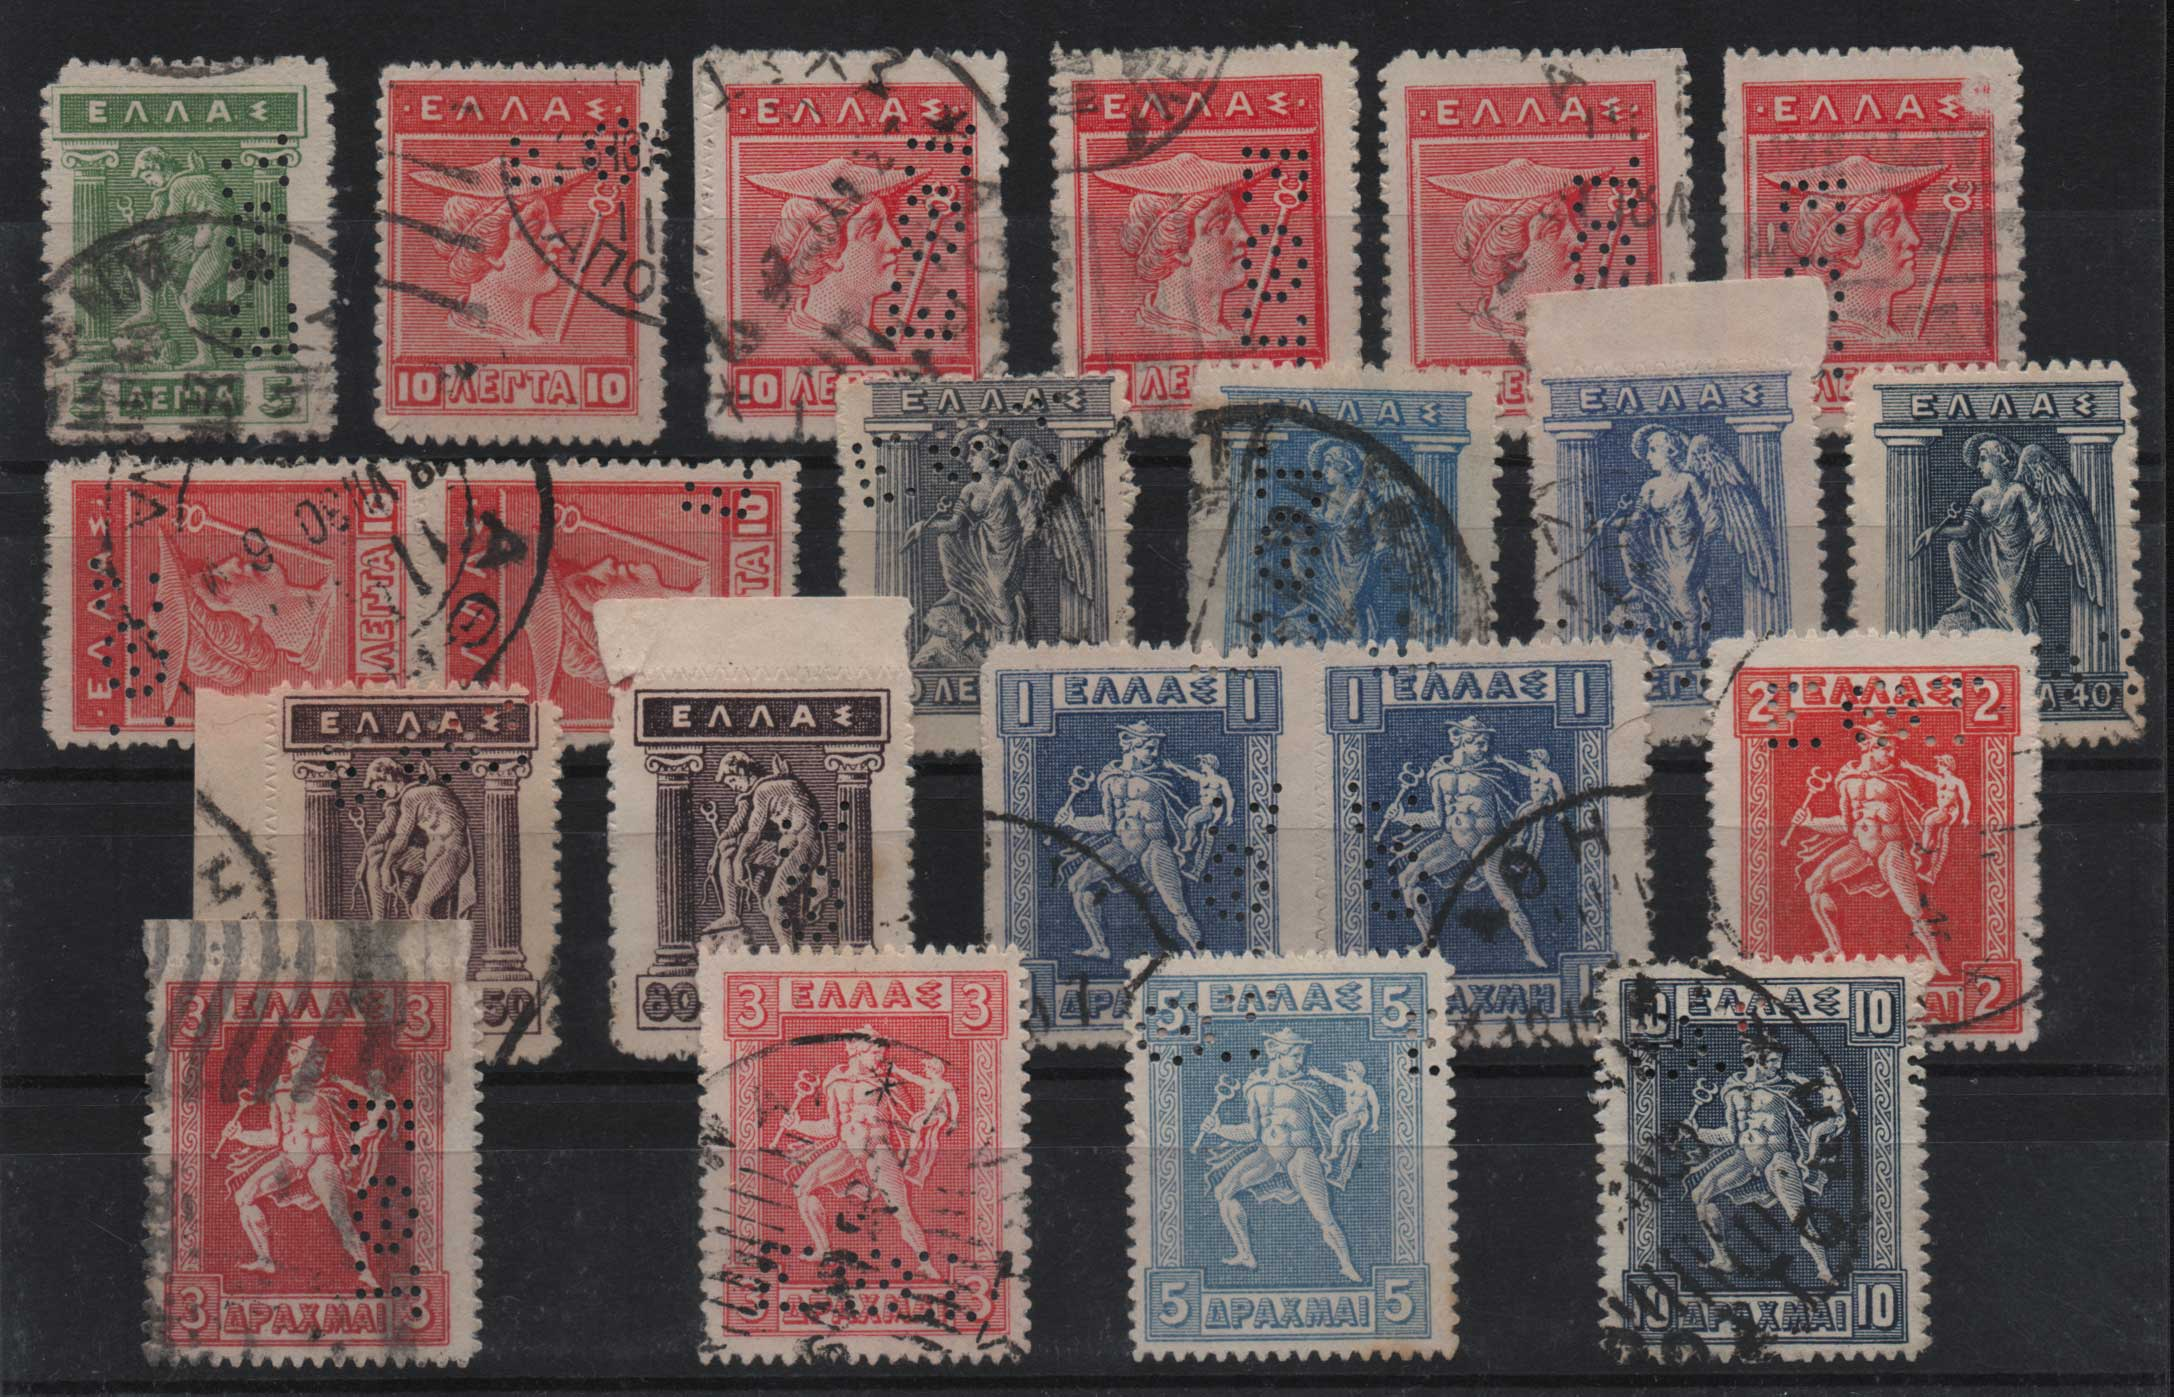 Lot 1464 - -  MISCELLANEOUS LOTS & ACCUMULATIONS MISCELLANEOUS LOTS & ACCUMULATIONS -  Athens Auctions Public Auction 83 General Stamp Sale